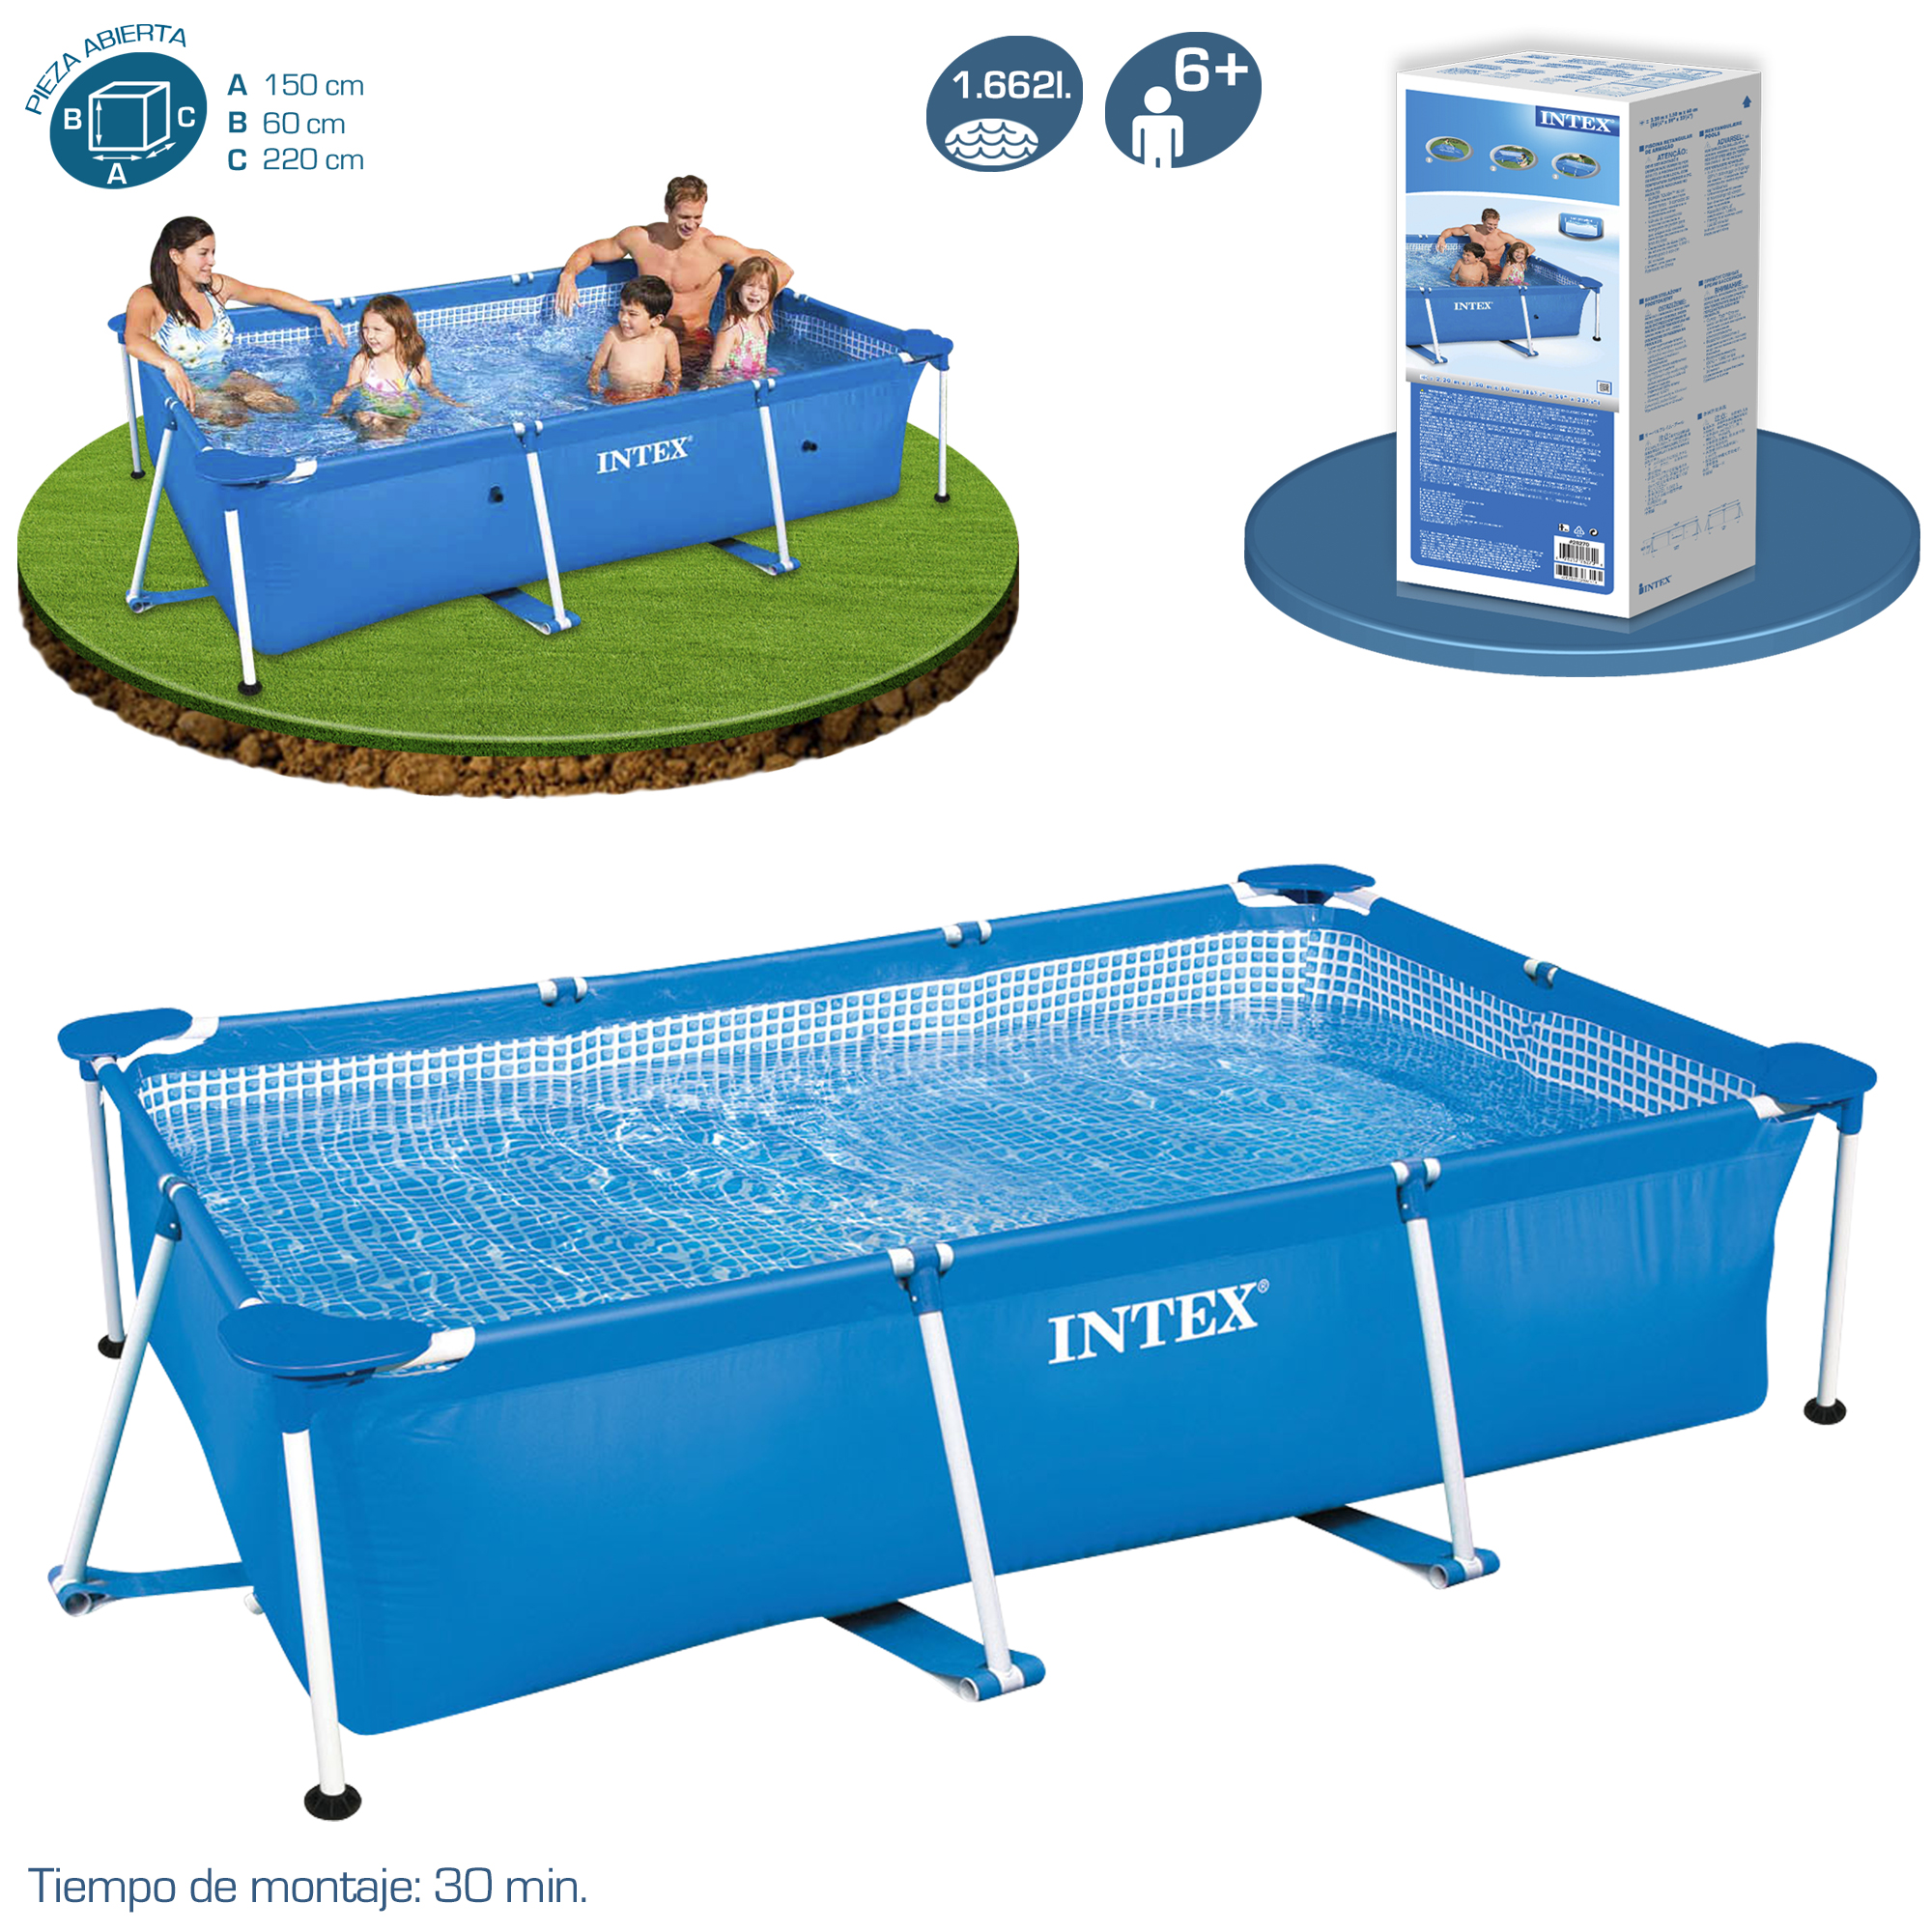 Piscina intex small rectangular frame piscinas desmontables for Albercas intex precios